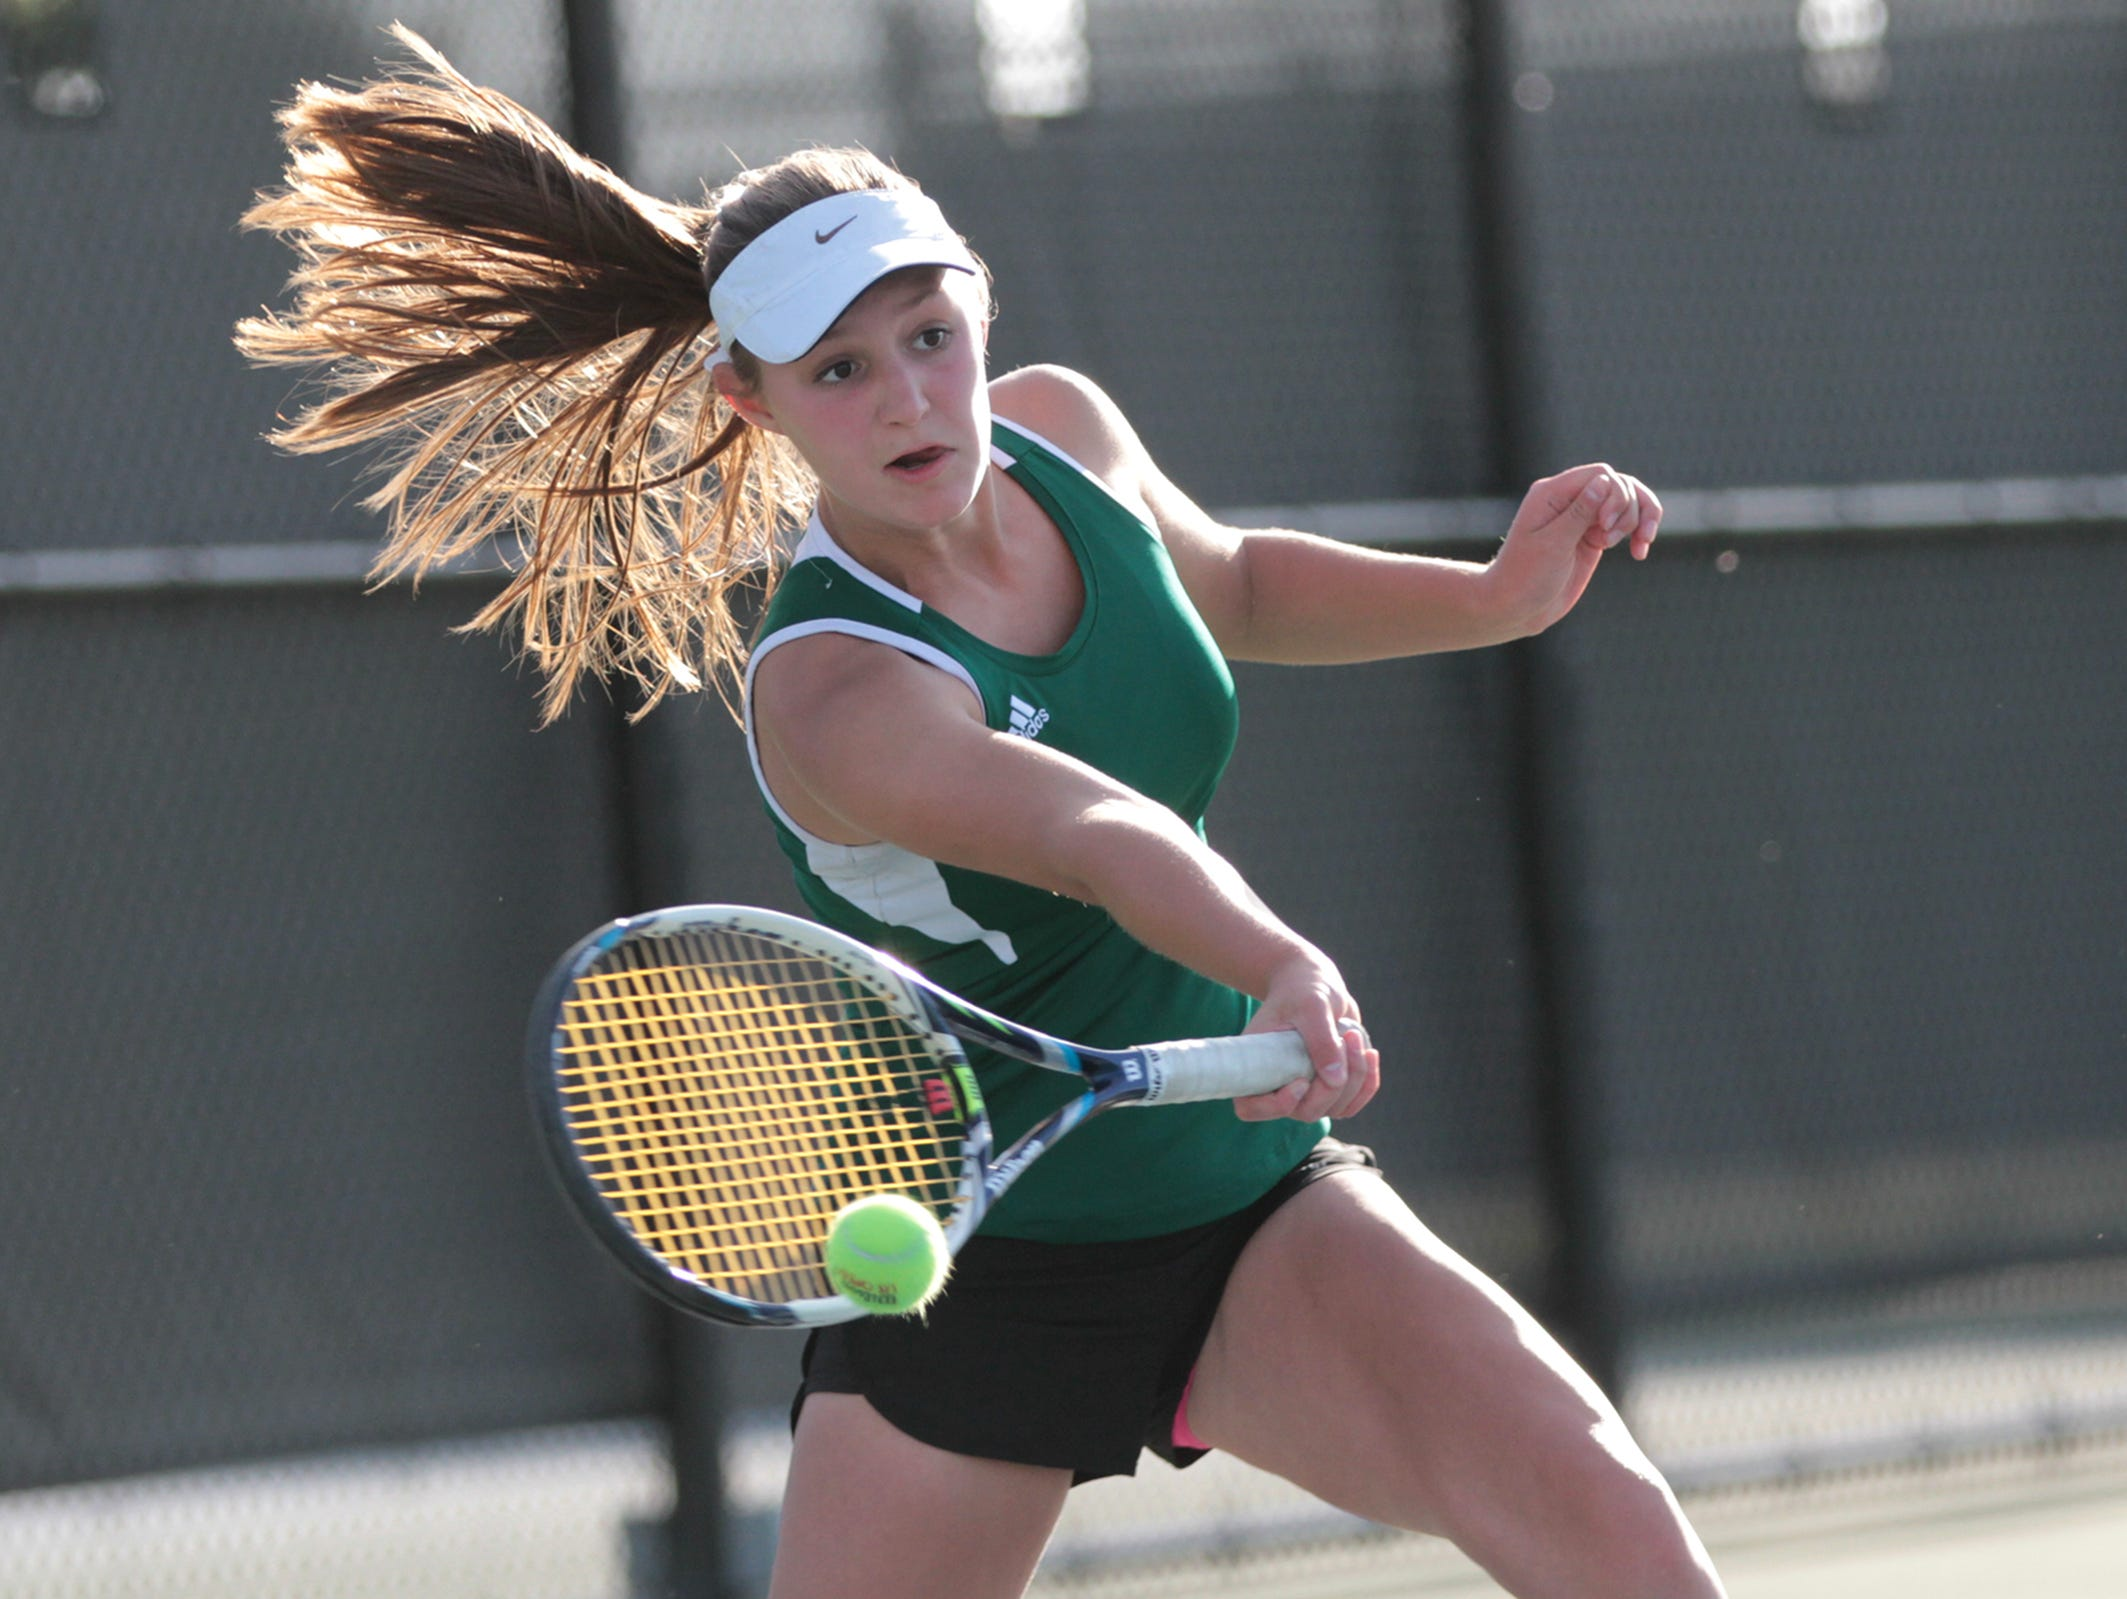 West High's Abby Jans returns her shot during her doubles match with Megan Jans against City High's Innes Hicsasmaz and Eve Small at the Hawkeye Tennis and Recreation Complex on Tuesday.